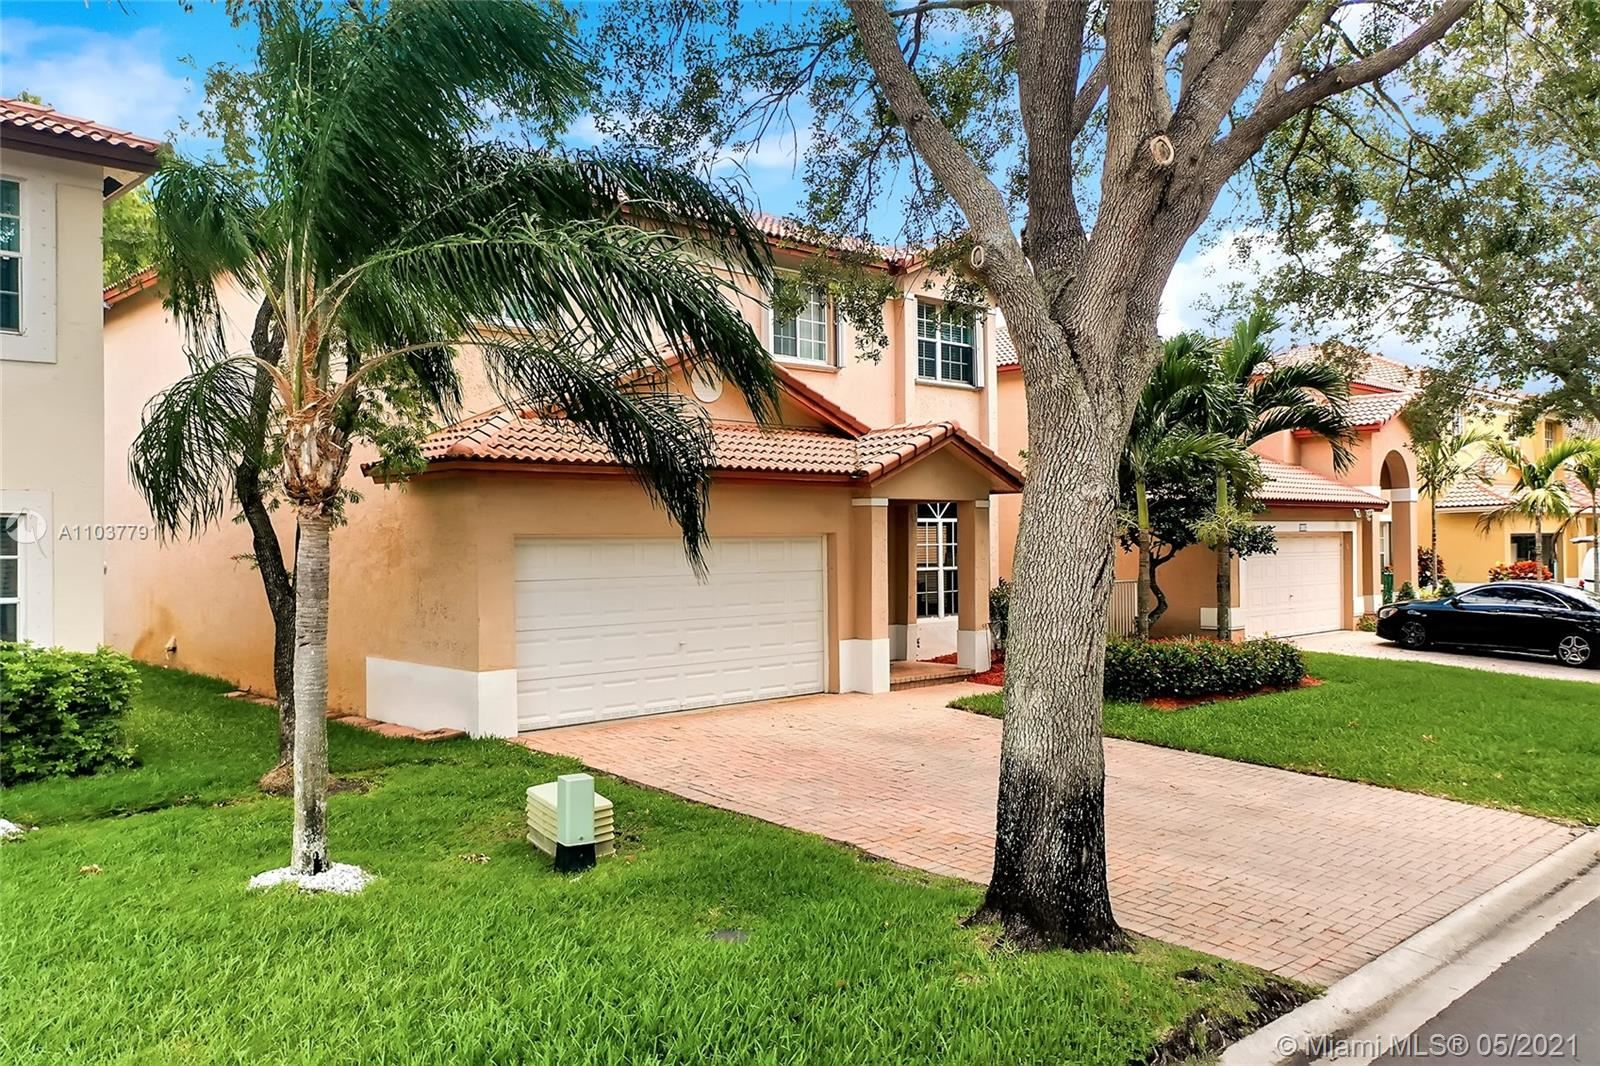 6115 NW 41st Dr, Coral Springs, FL 33067 - #: A11037791